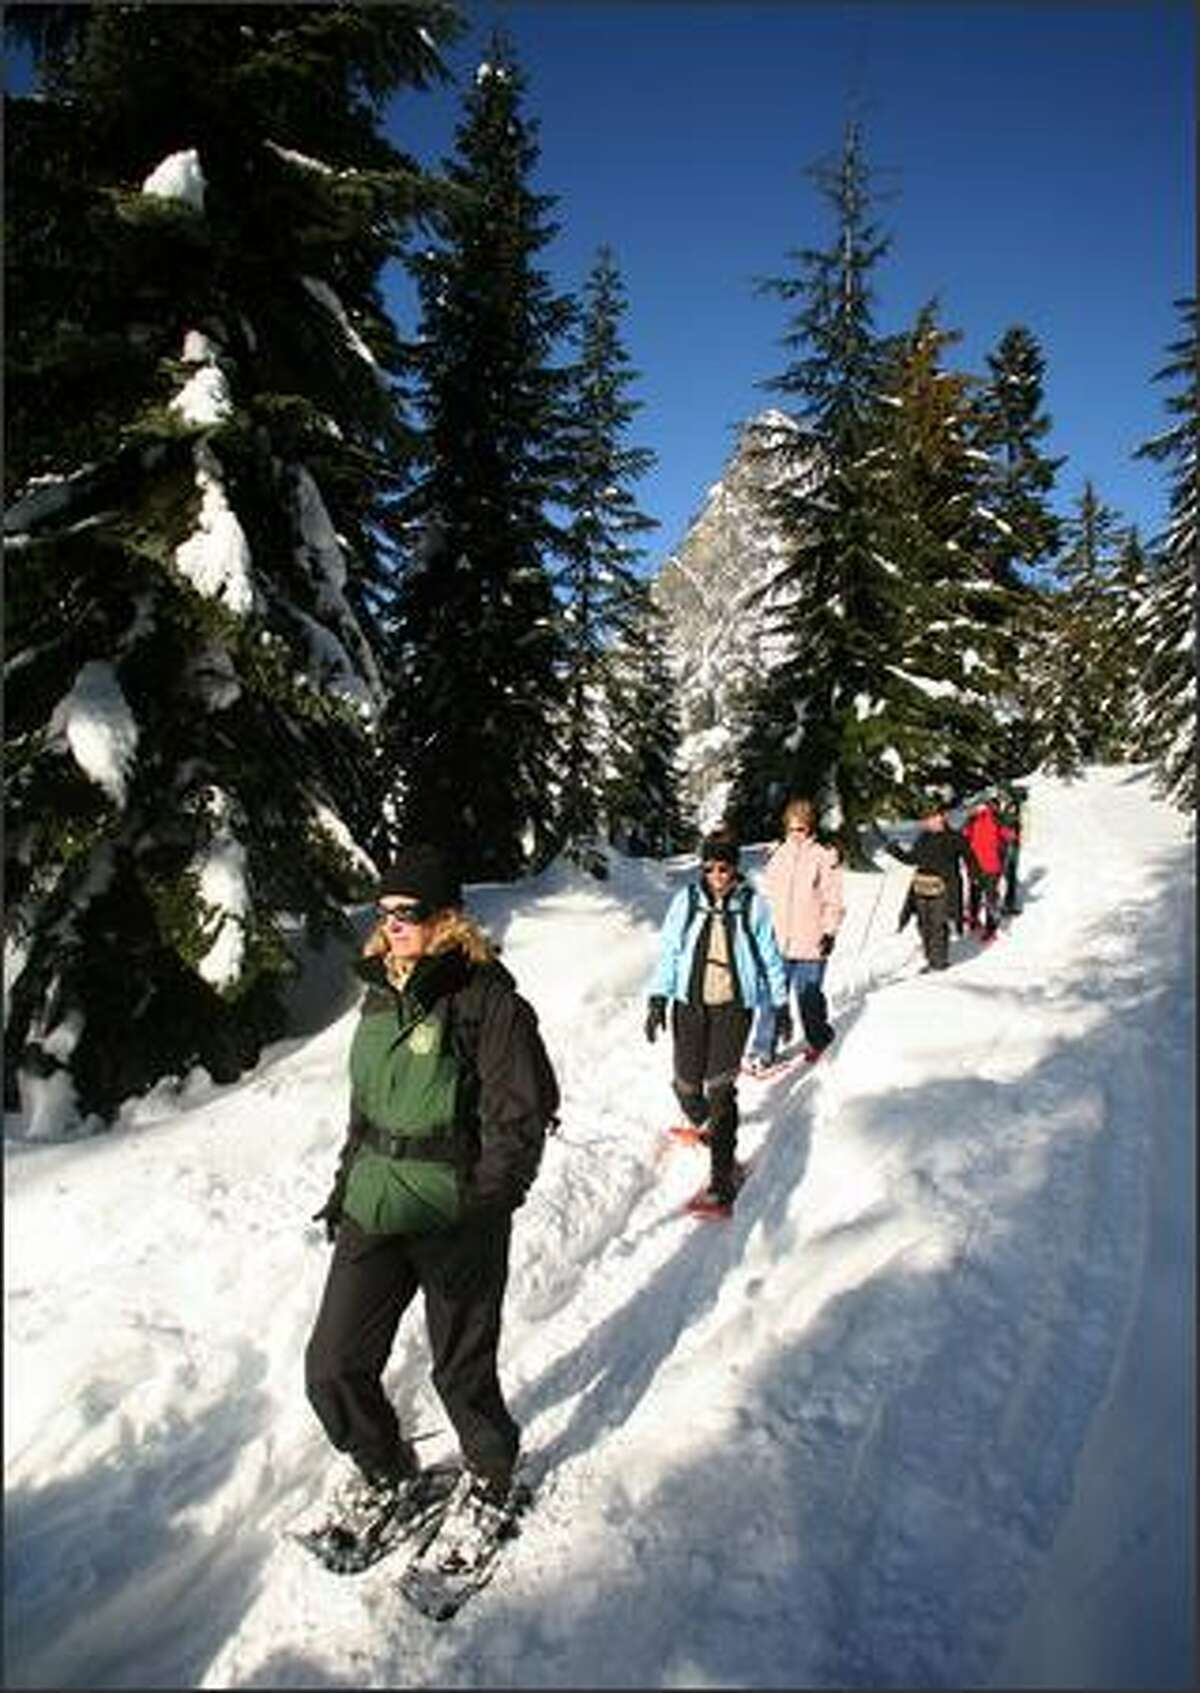 Lori Krawchuk, a Forest Service volunteer, leads her group back to Snoqualmie Pass after a scenic tromp to Commonwealth Basin.